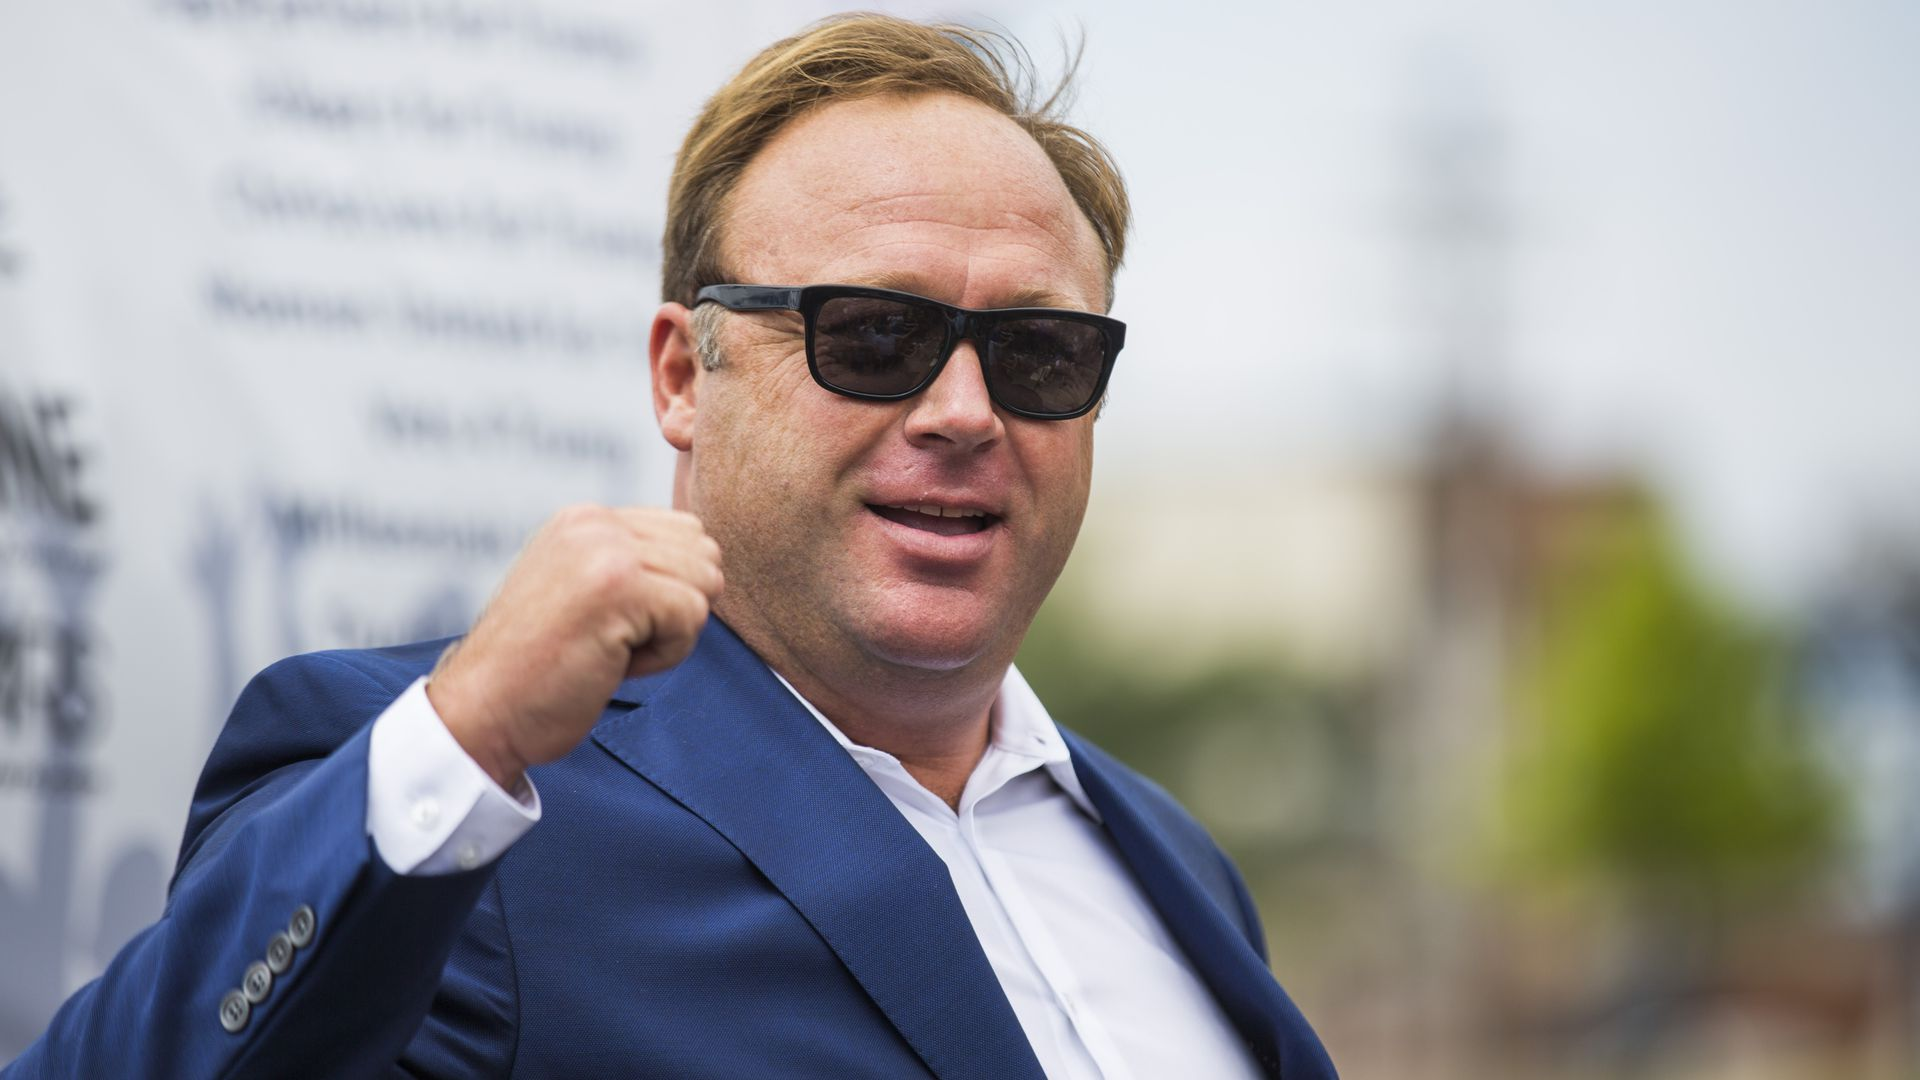 Alex Jones wearing a blue suit and sun glasses.